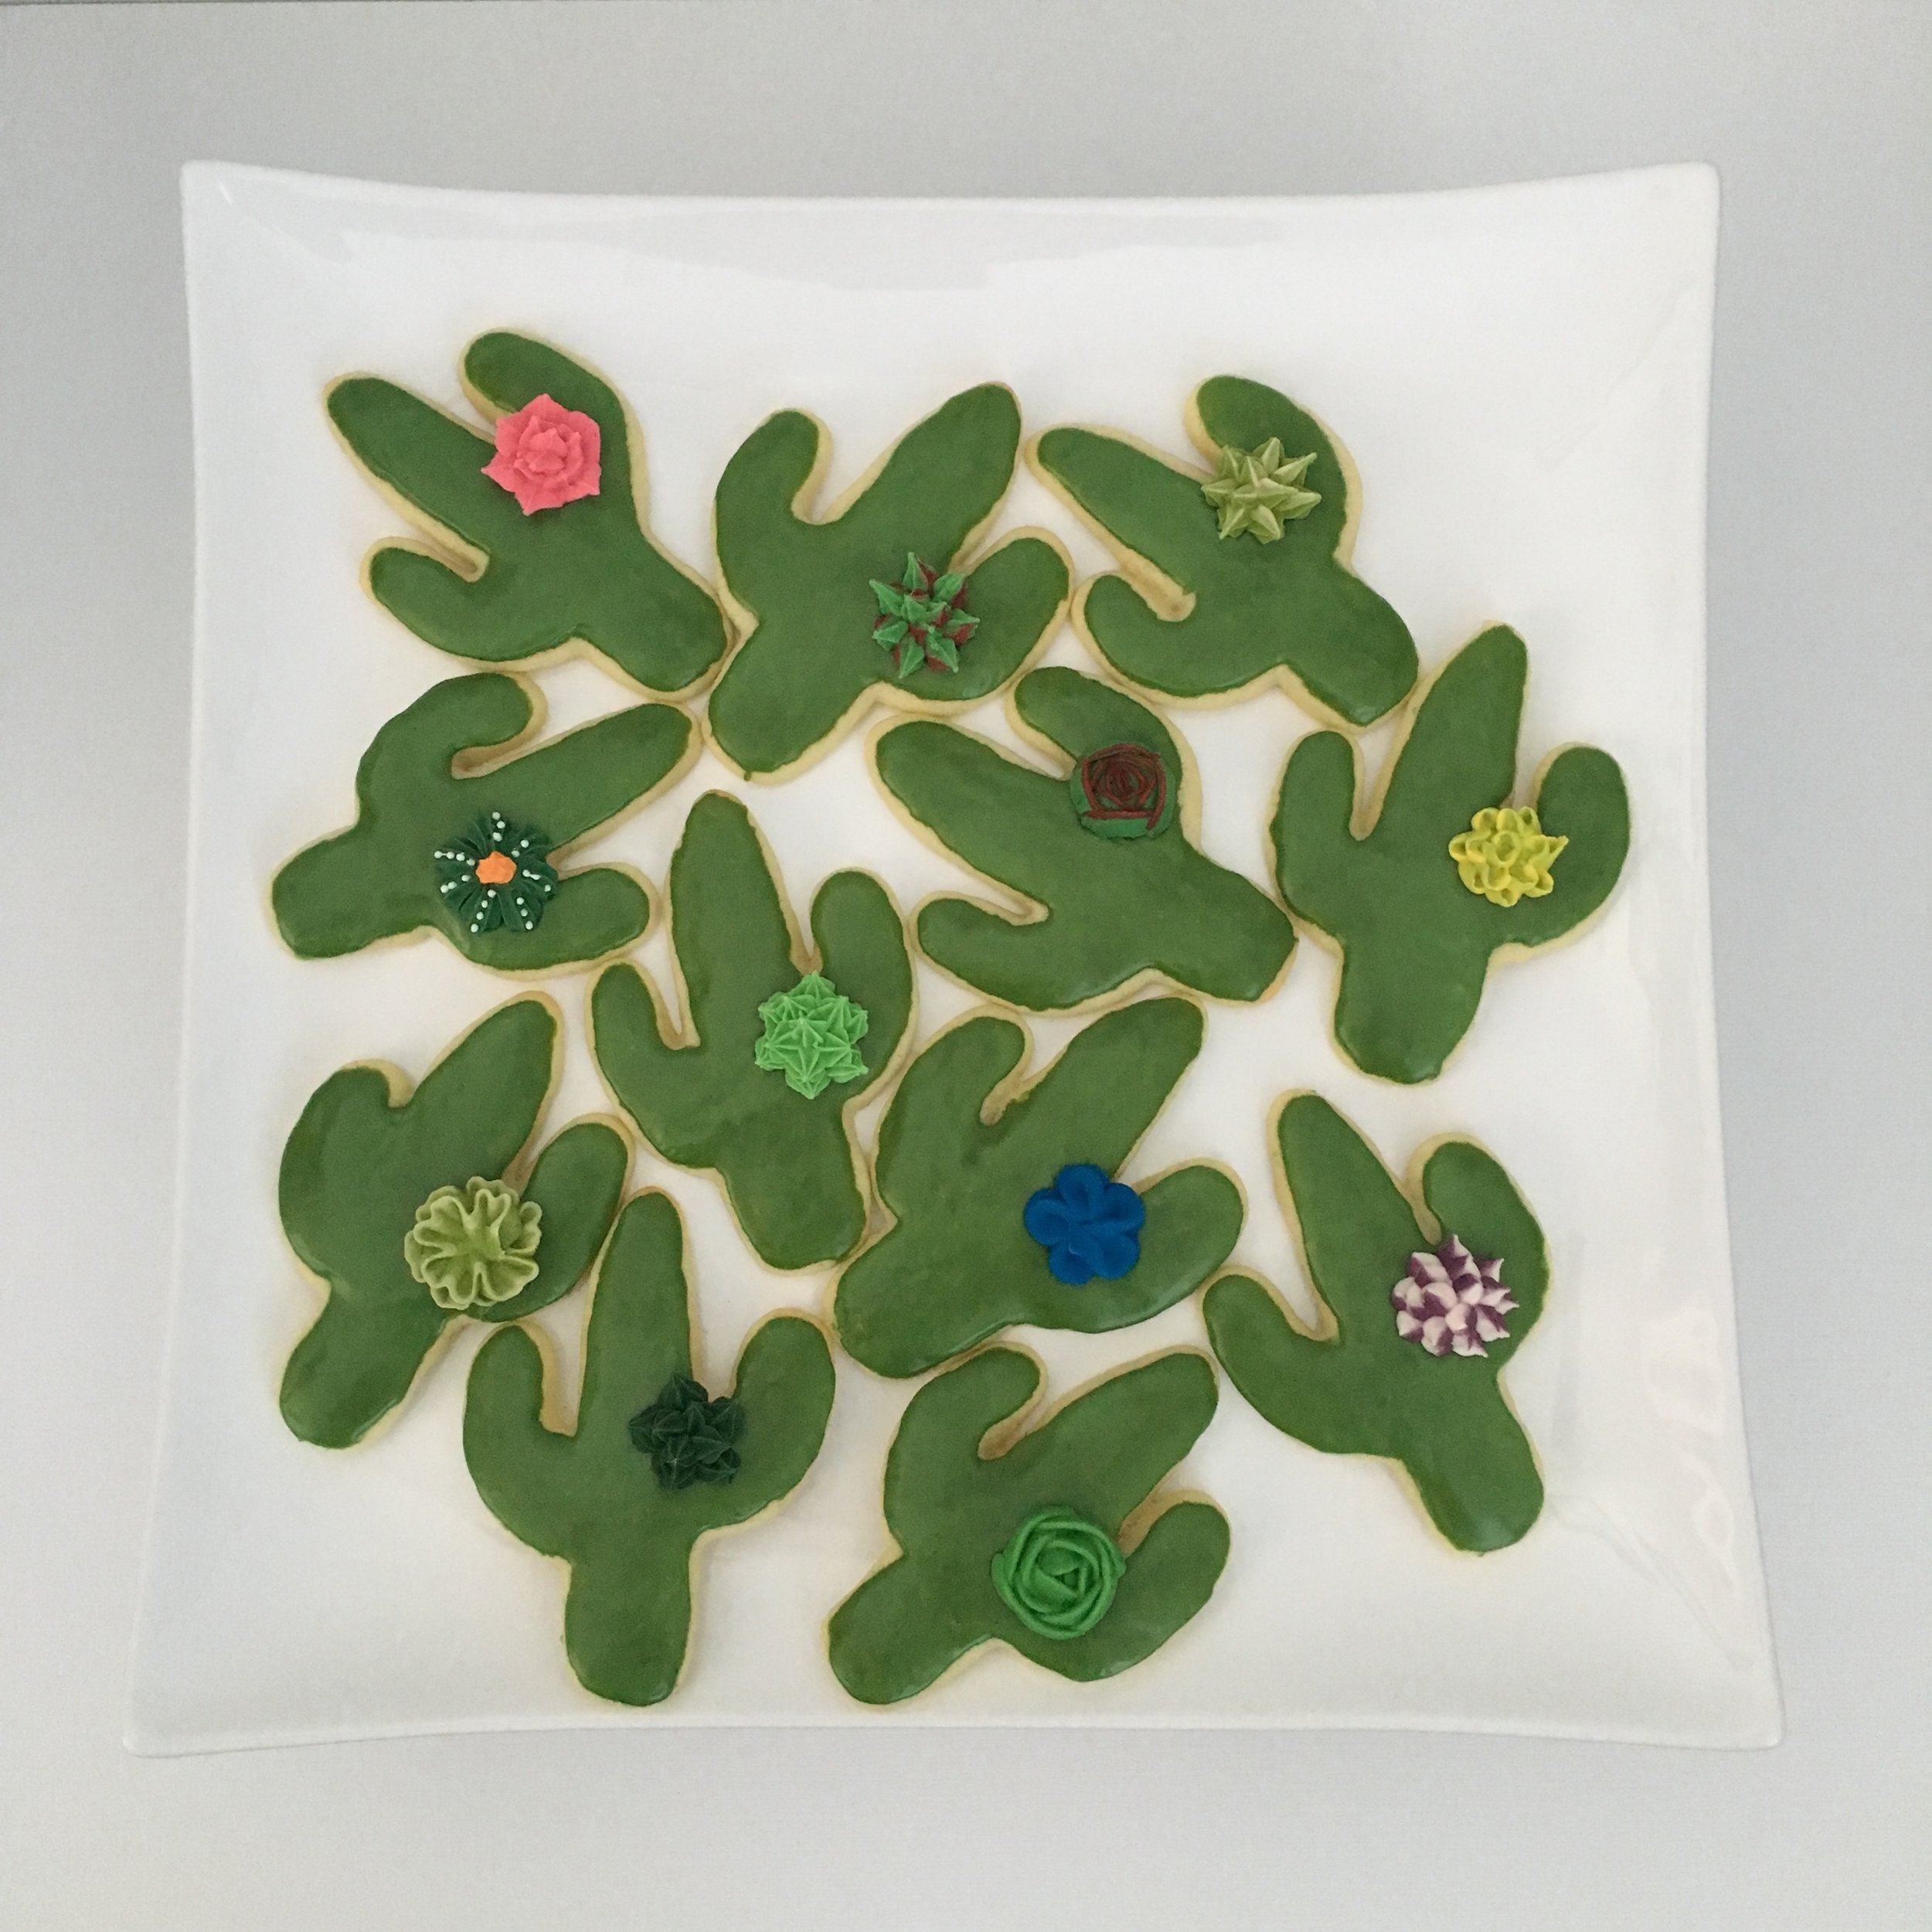 Decorated sugar cookies for 1st birthday party